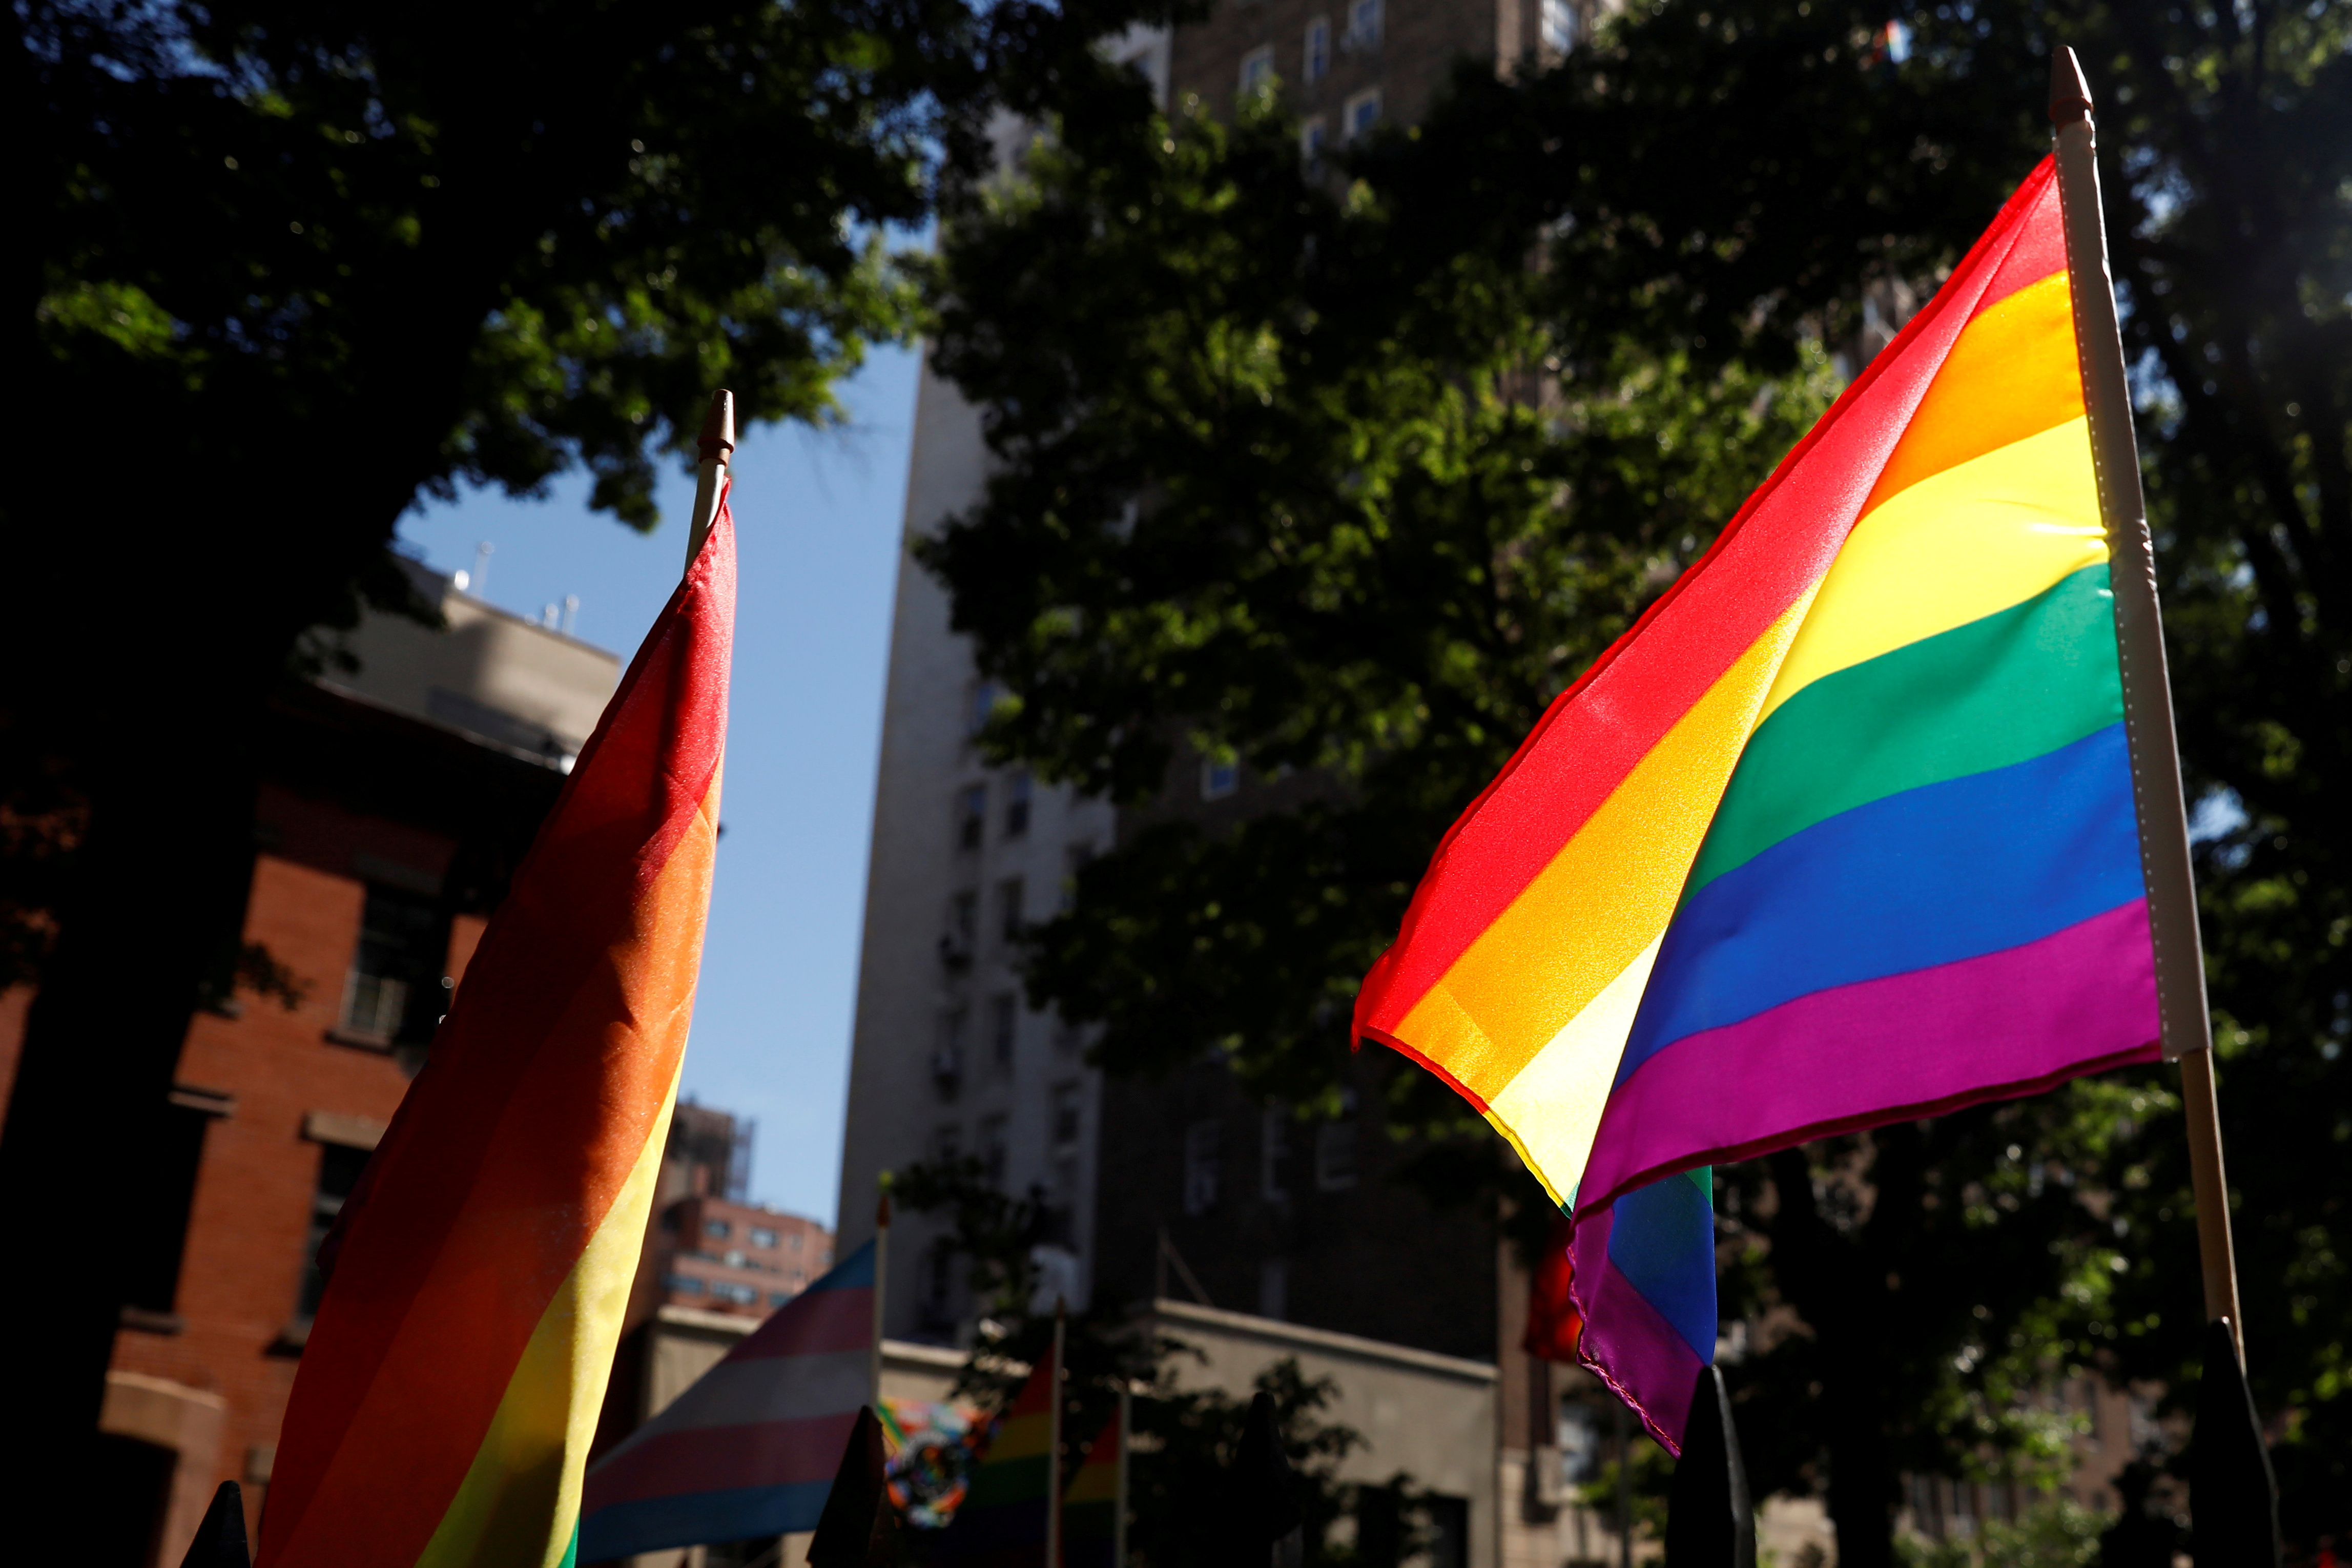 A rainbow flag, commonly known as the gay pride flag or LGBT pride flag, blows in the wind inside Christopher Park outside the Stonewall Inn in New York, U.S., June 27, 2019.  REUTERS/Shannon Stapleton/File Photo